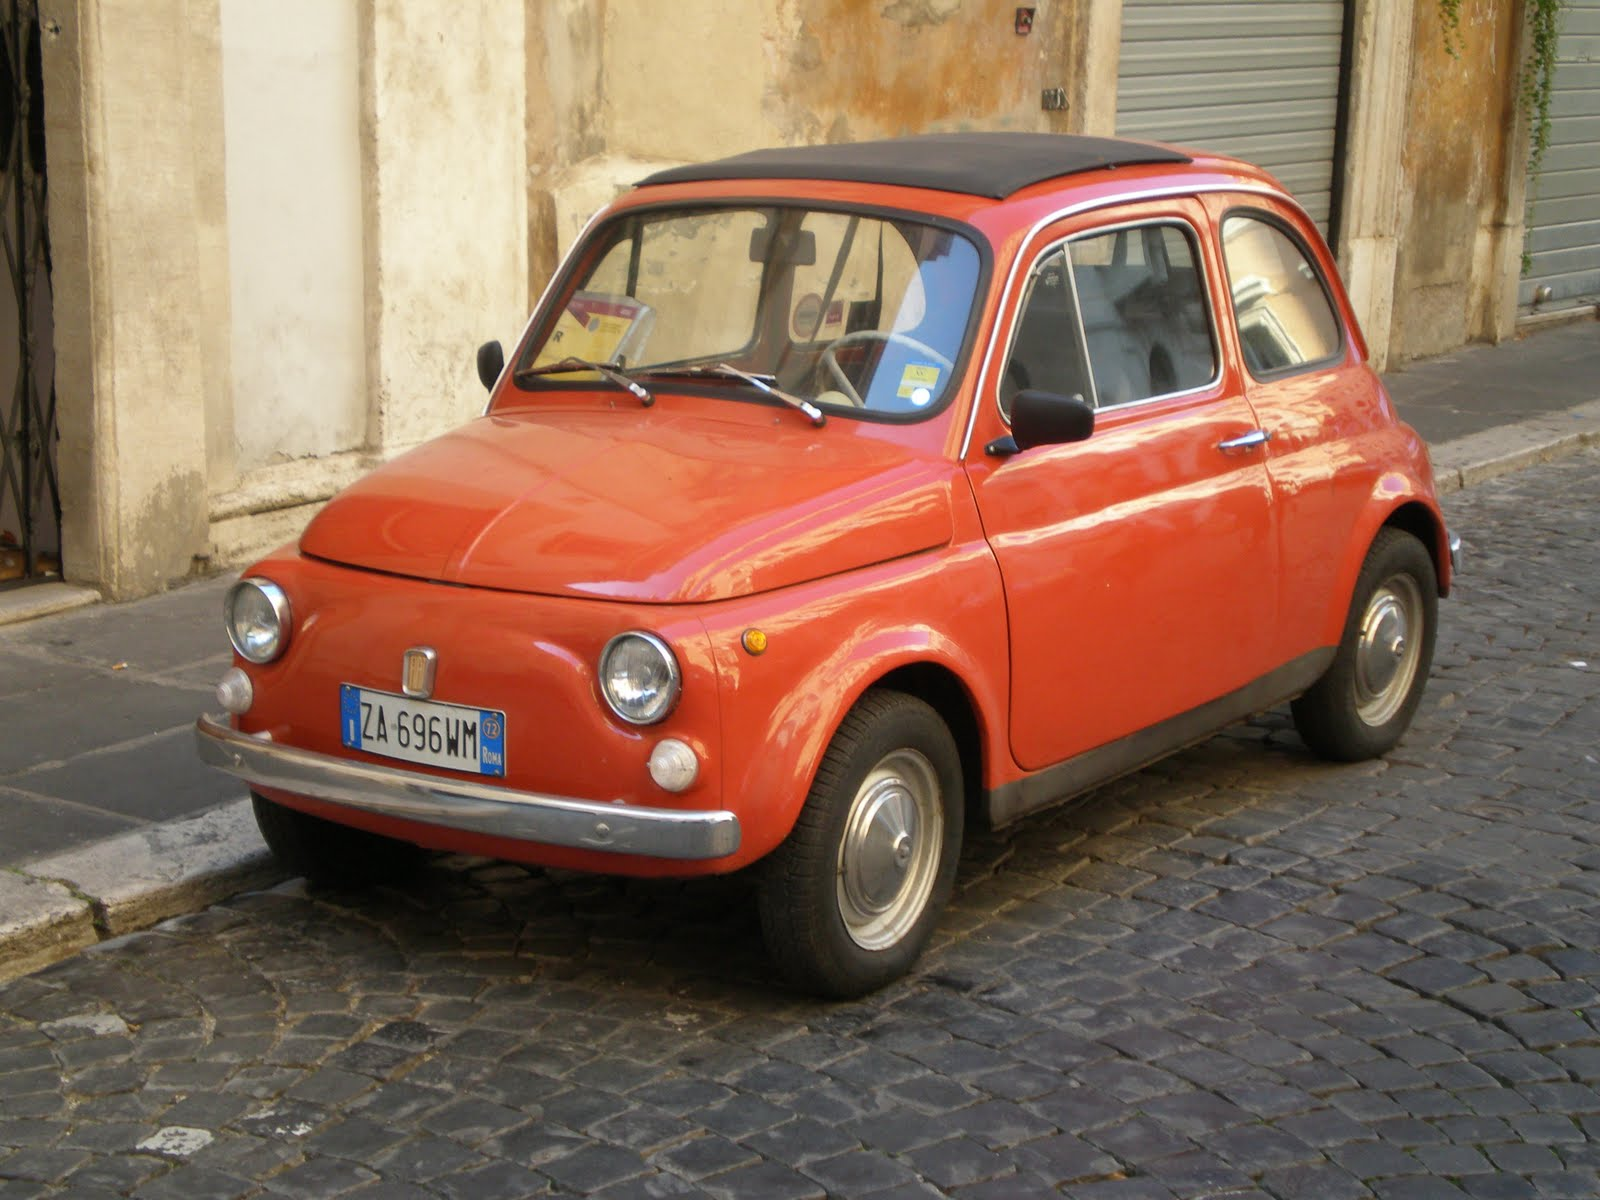 sunshine lobster fiat 500 39 s and scooters in italy. Black Bedroom Furniture Sets. Home Design Ideas